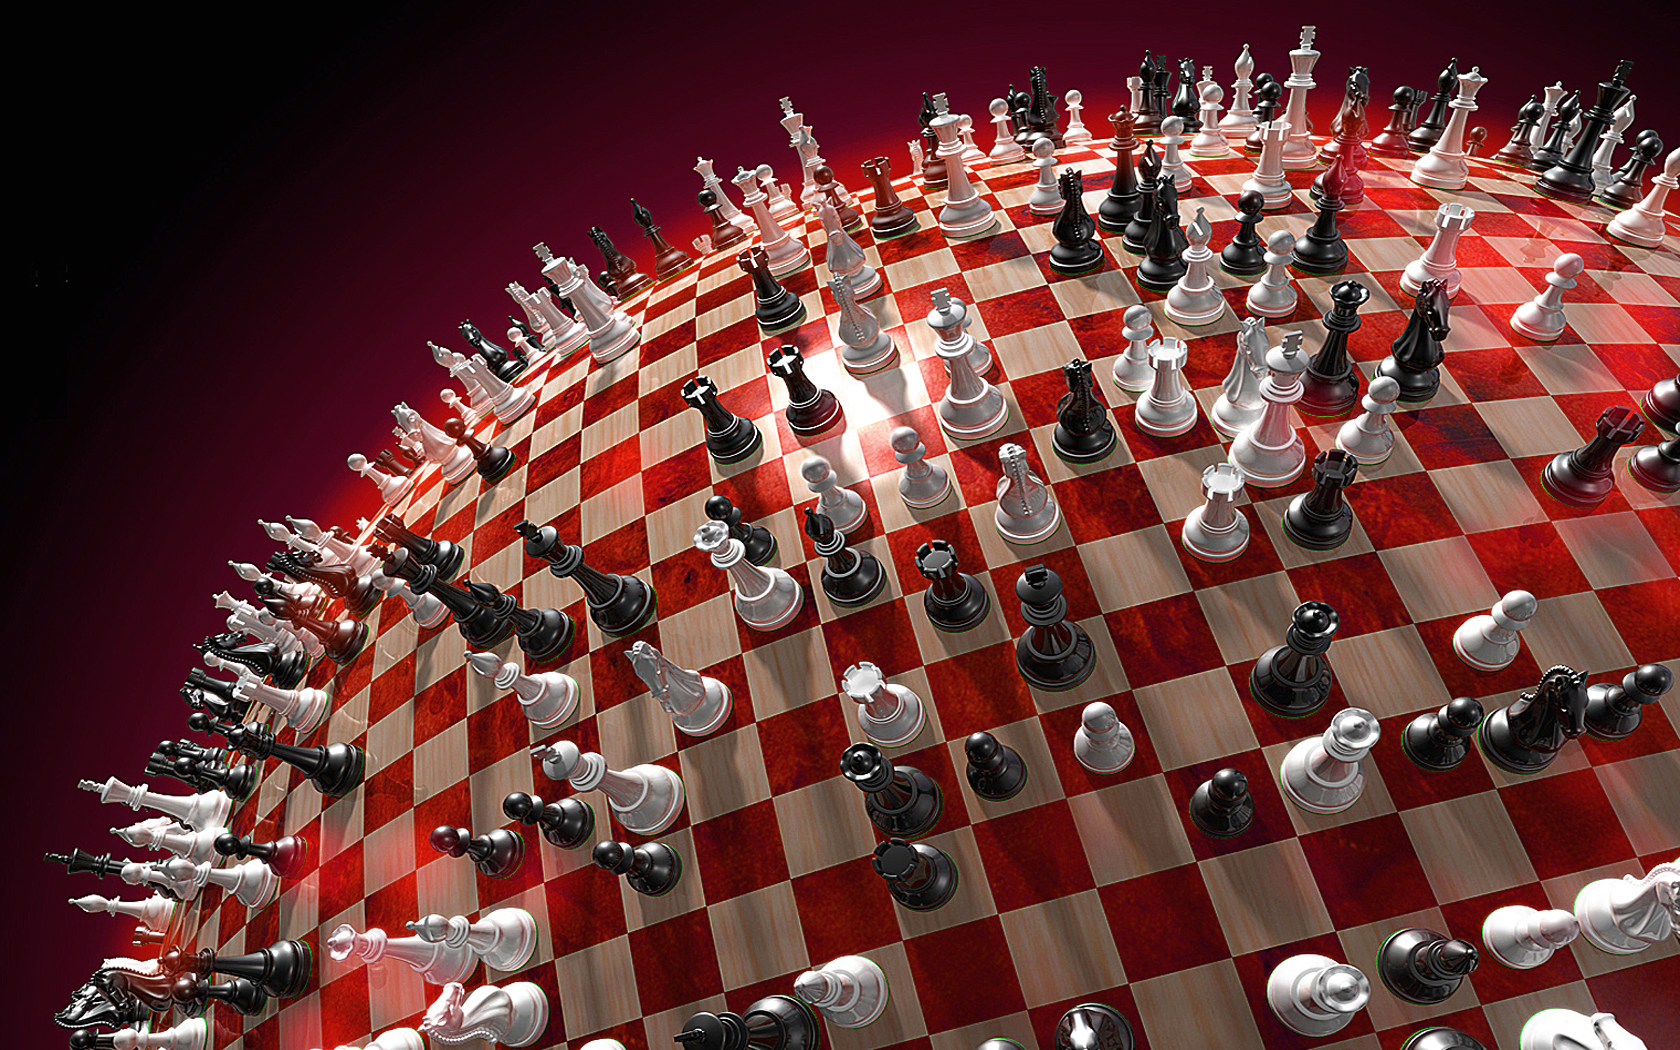 world-war-iii-chessboard